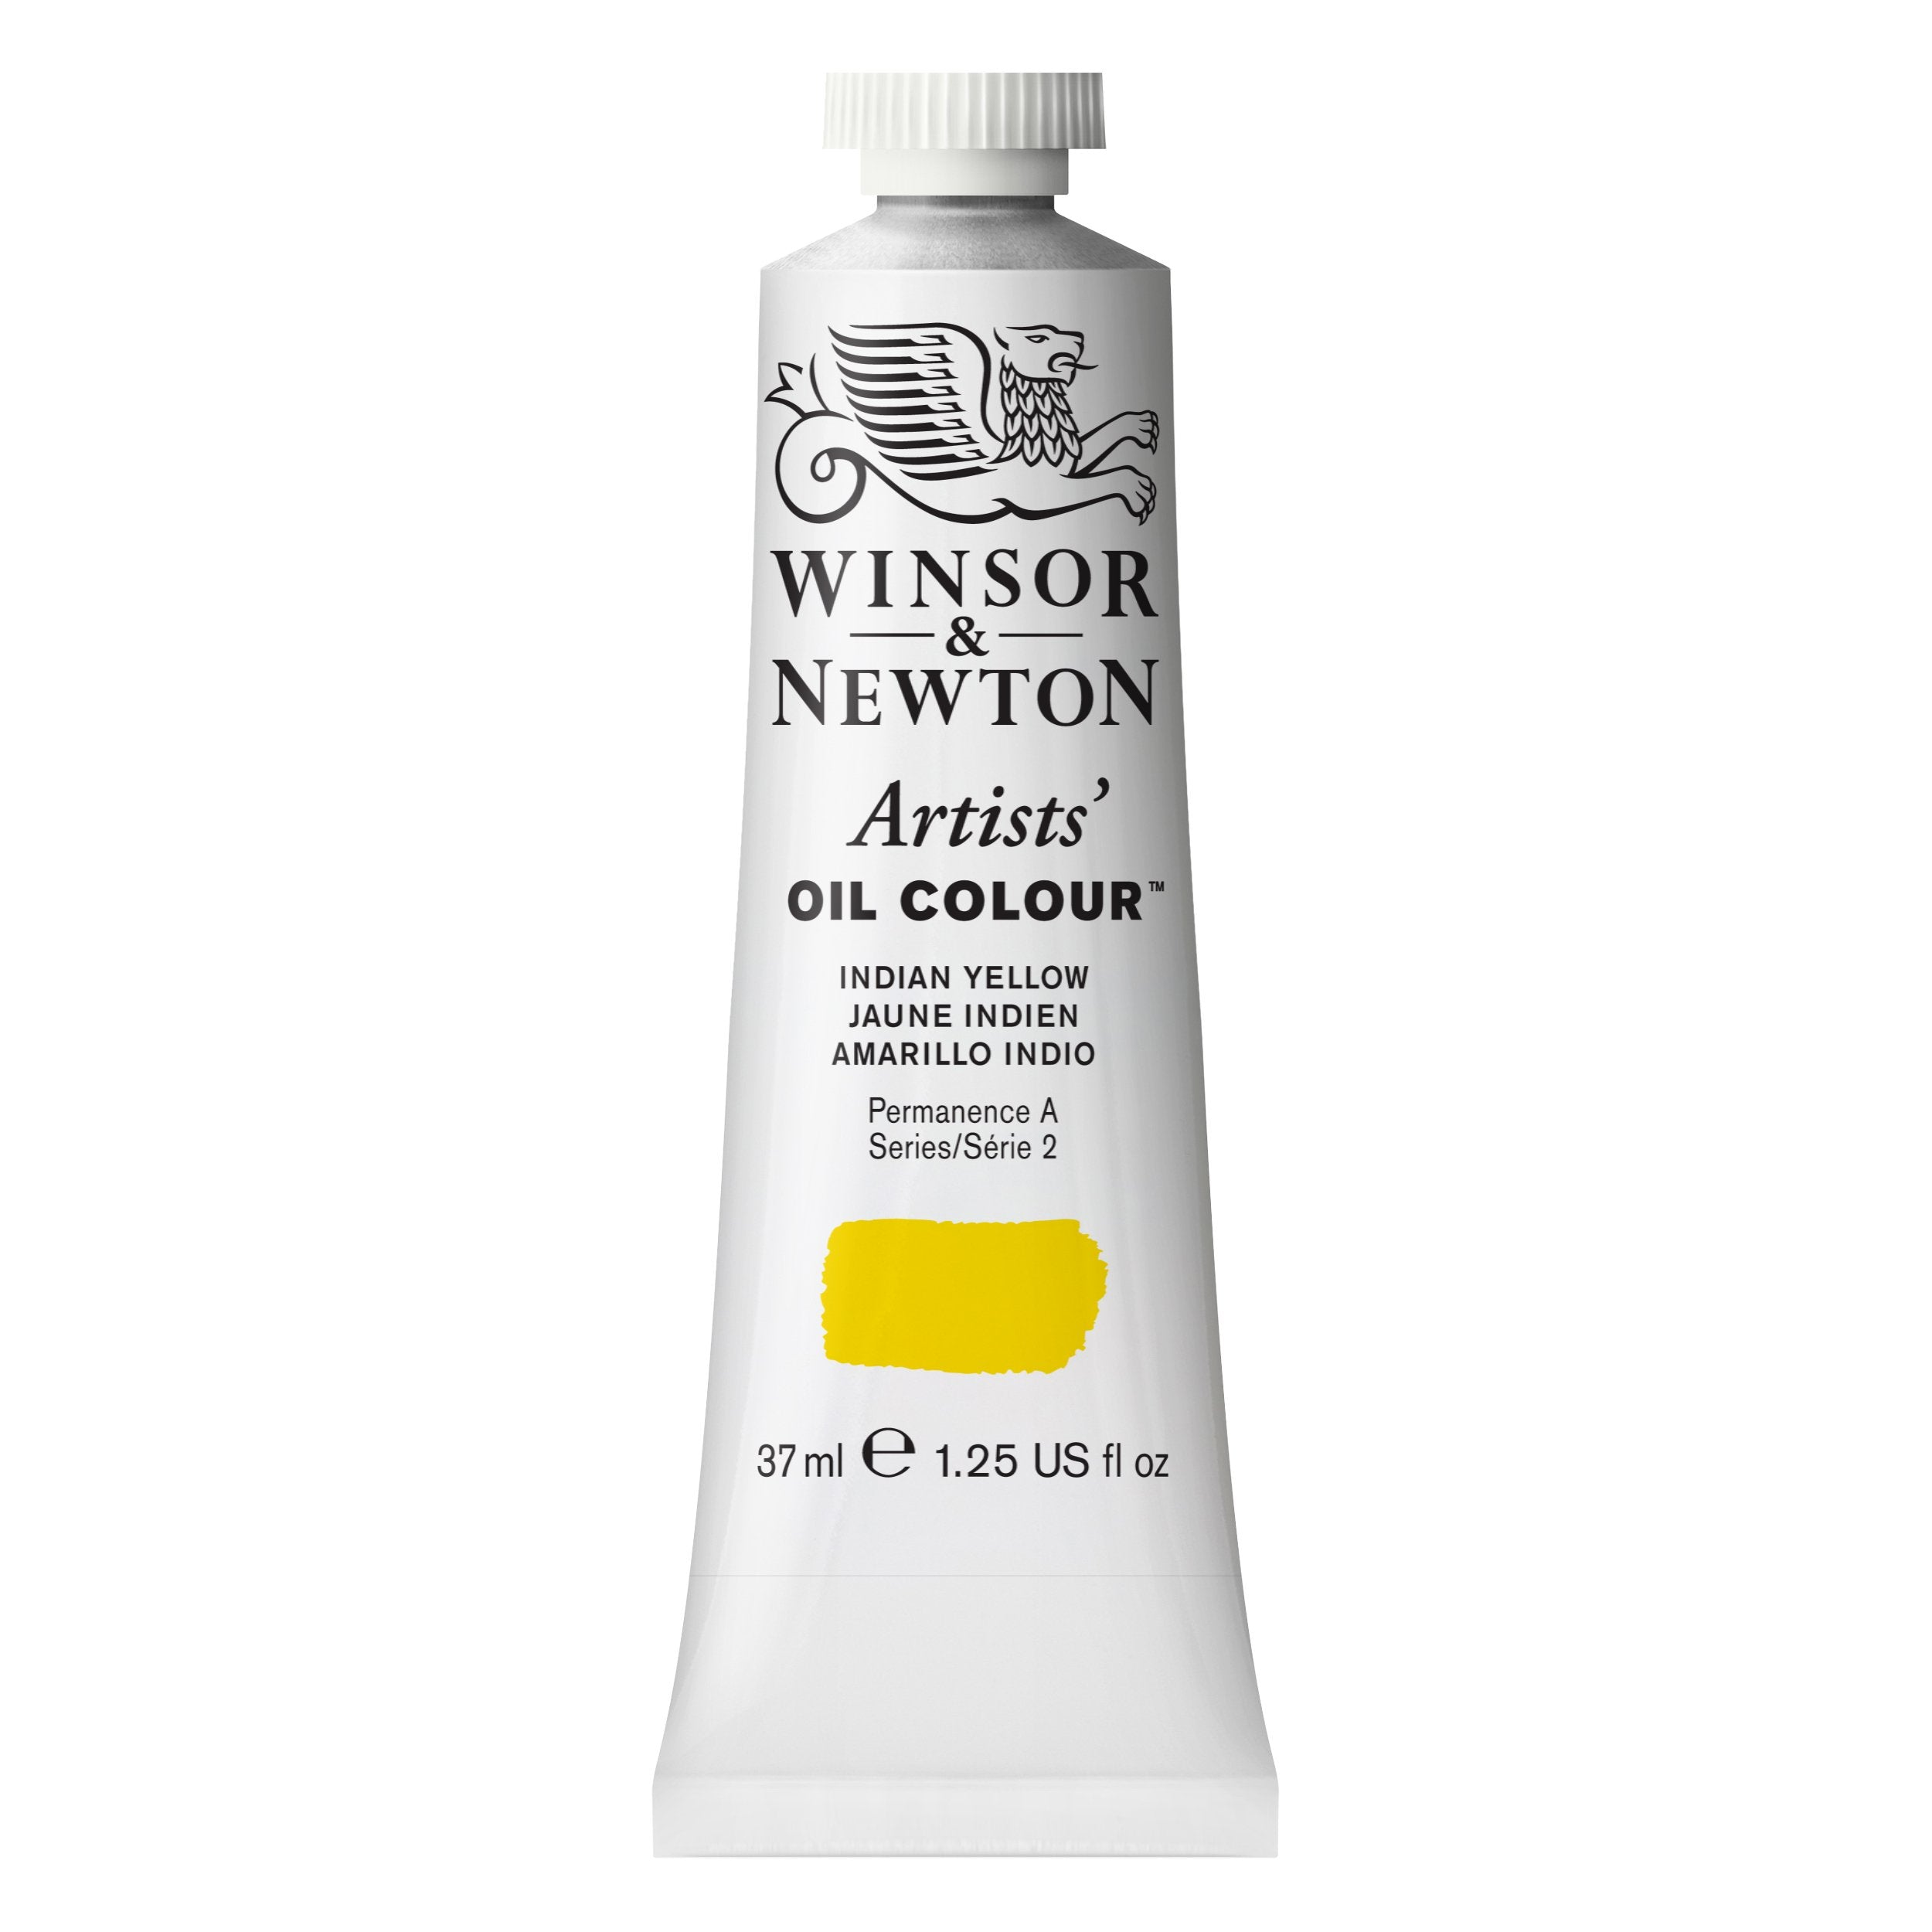 Winsor & Newton Artists Oil Color, 37ml, Indian Yellow